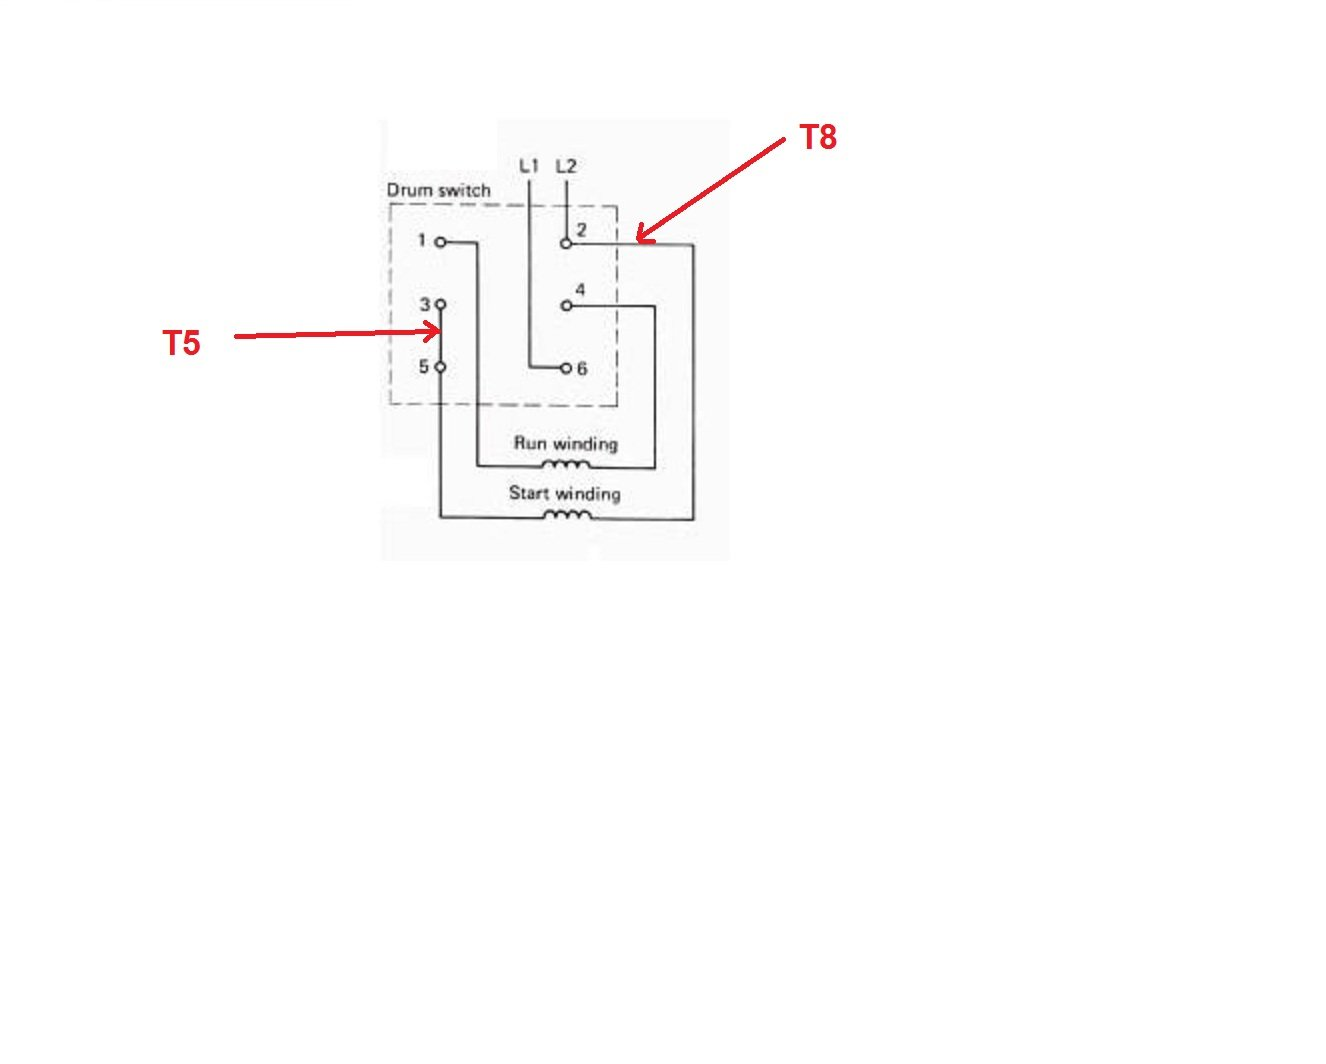 Wiring Diagram Drum Switch : Square d drum switch ag wiring diagram